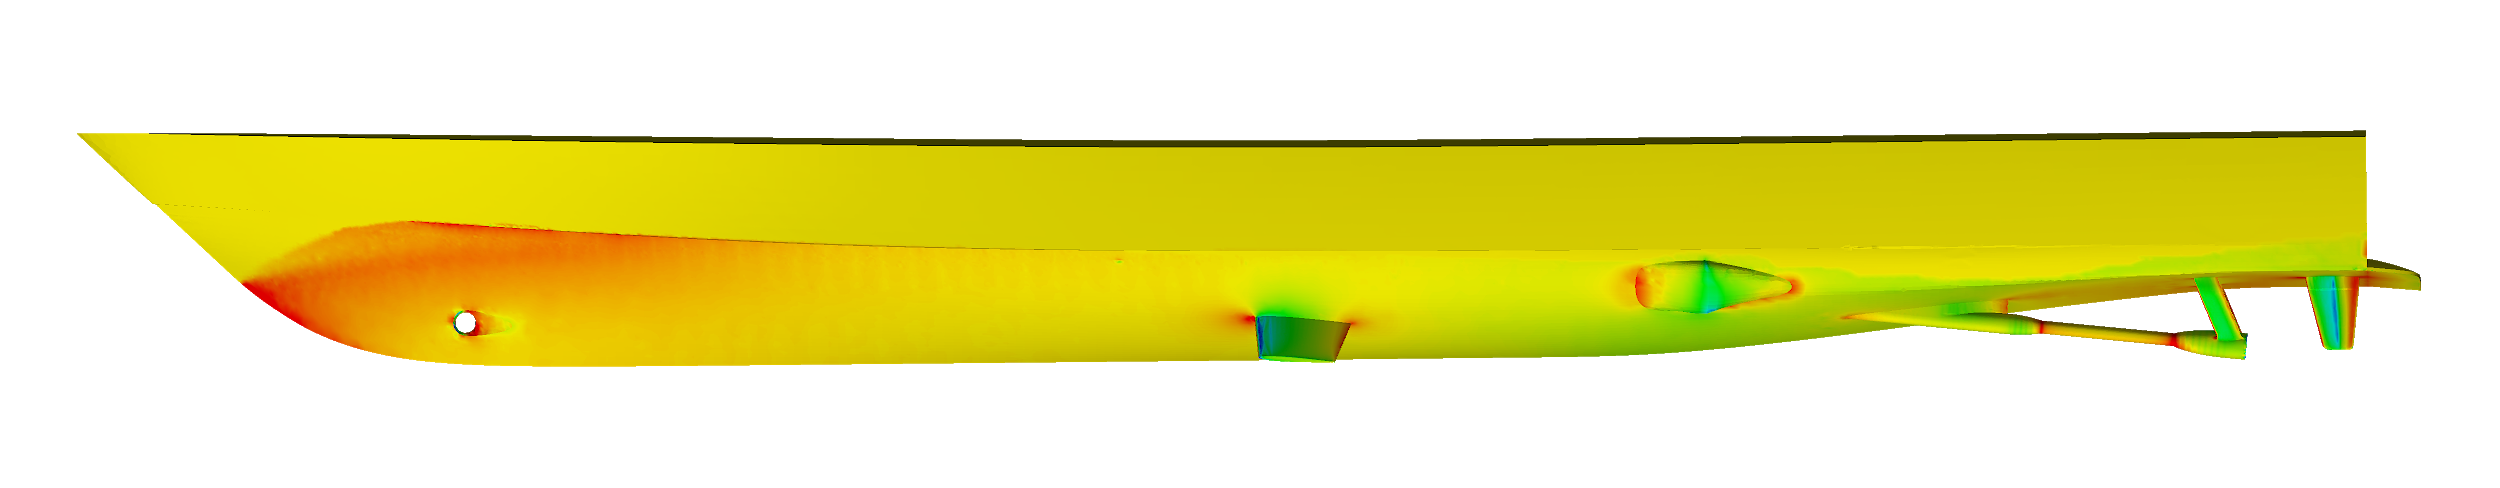 Pressure field distribution on a ship in steady resistance simulation